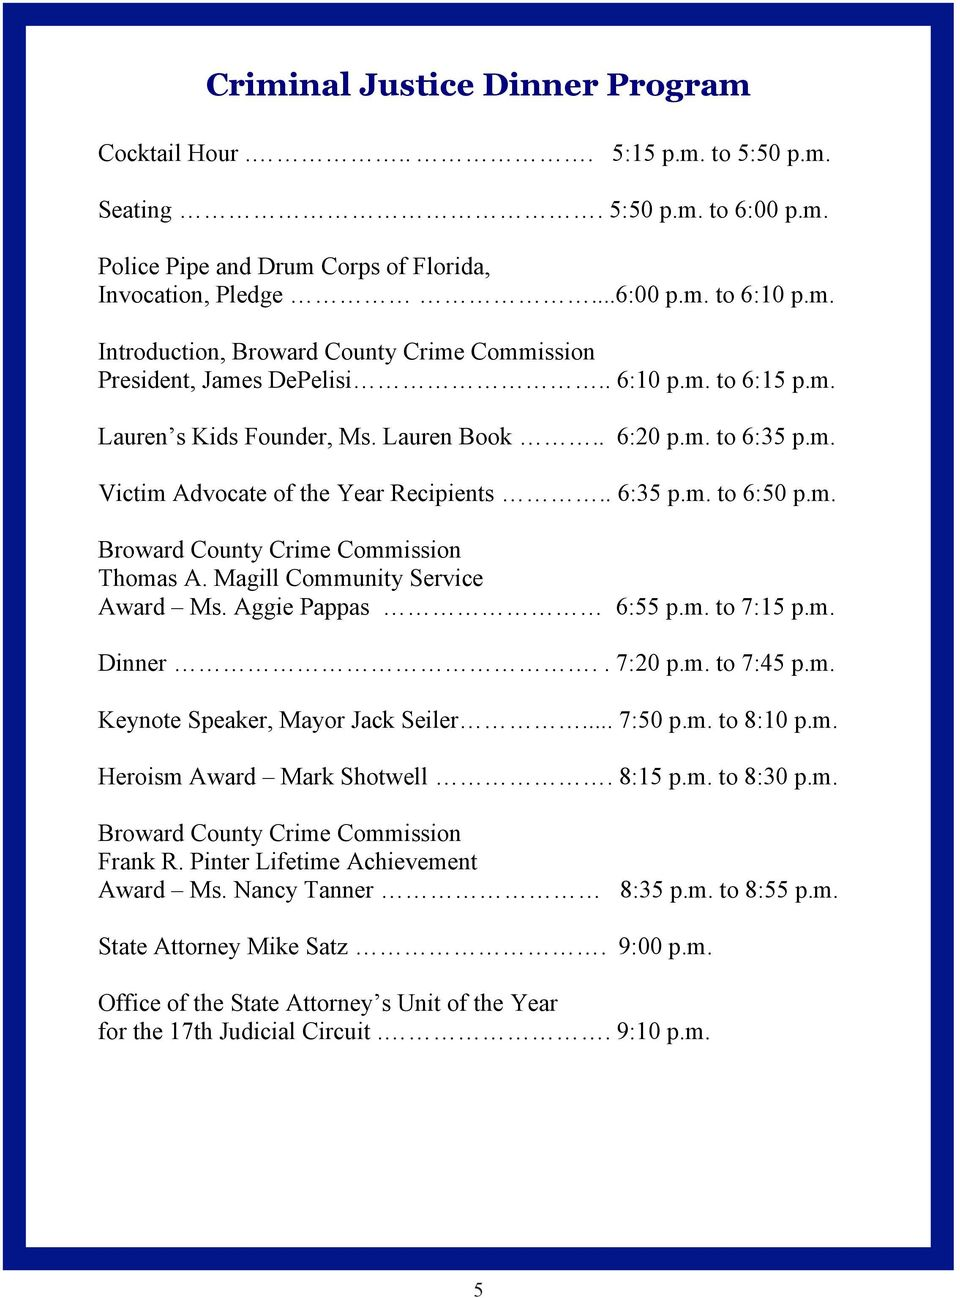 Magill Community Service Award Ms. Aggie Pappas 6:55 p.m. to 7:15 p.m. Dinner.. 7:20 p.m. to 7:45 p.m. Keynote Speaker, Mayor Jack Seiler... 7:50 p.m. to 8:10 p.m. Heroism Award Mark Shotwell. 8:15 p.